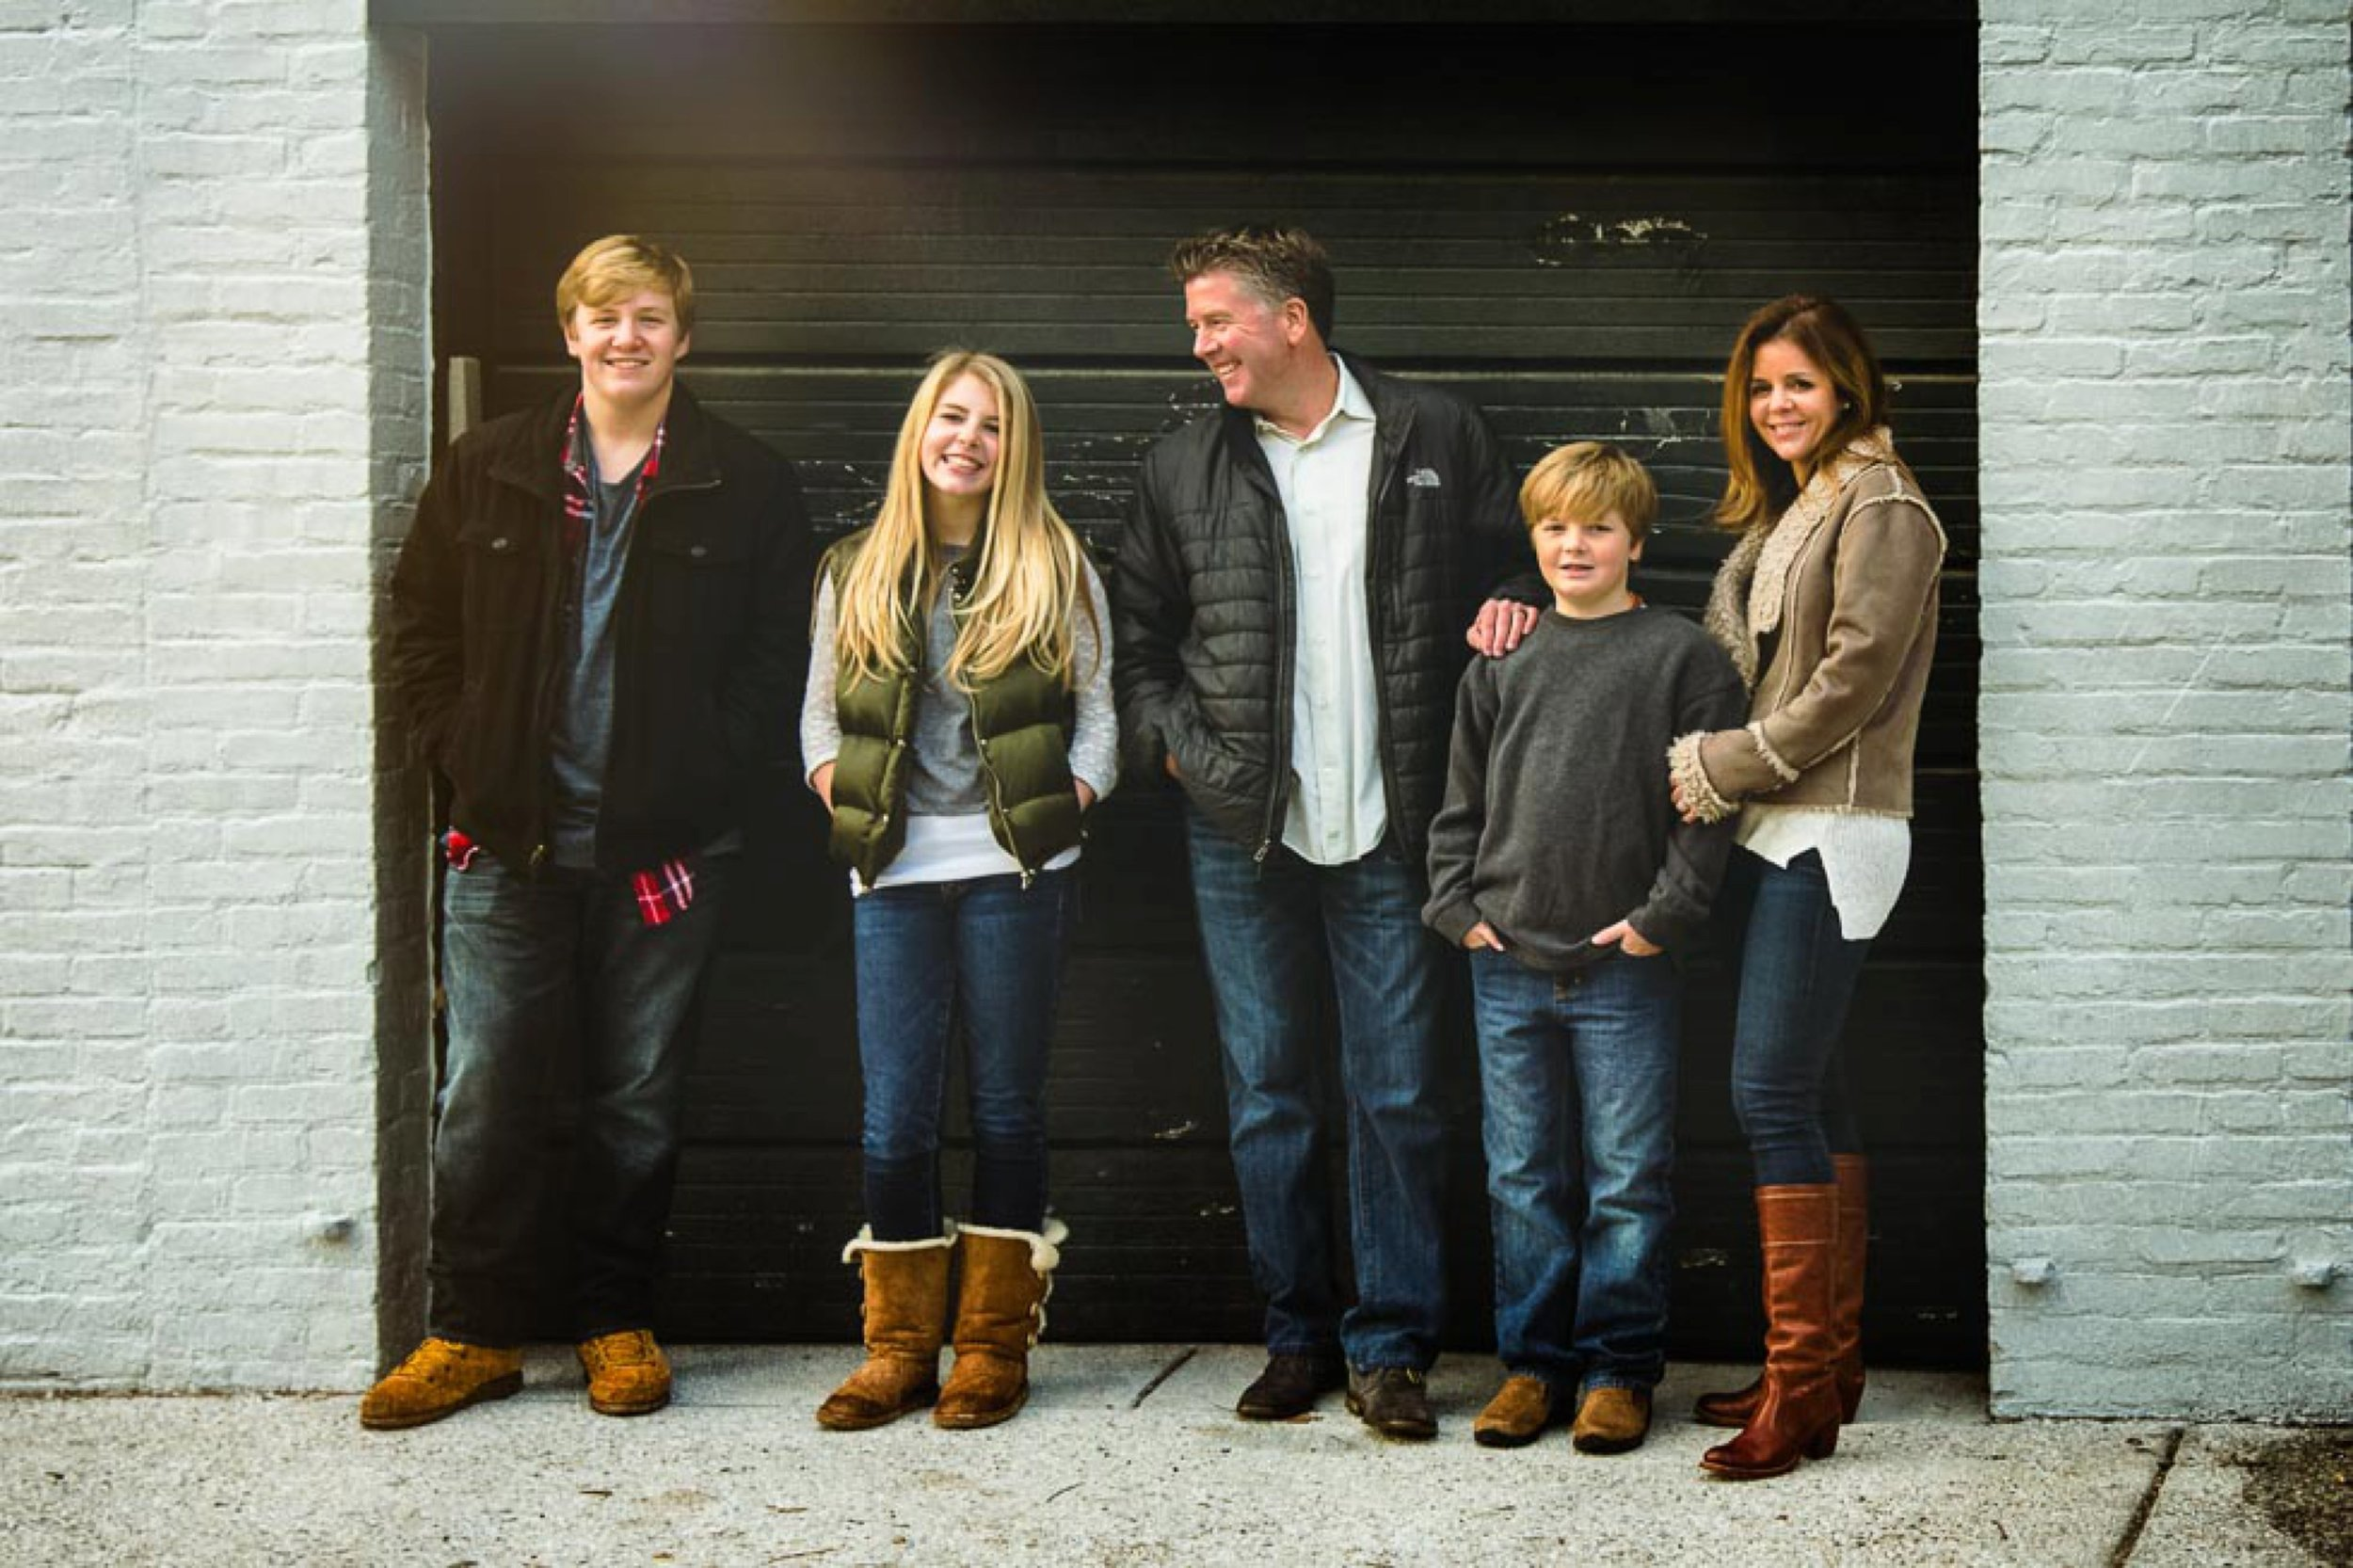 Amazing color image of family of five in urban scene.